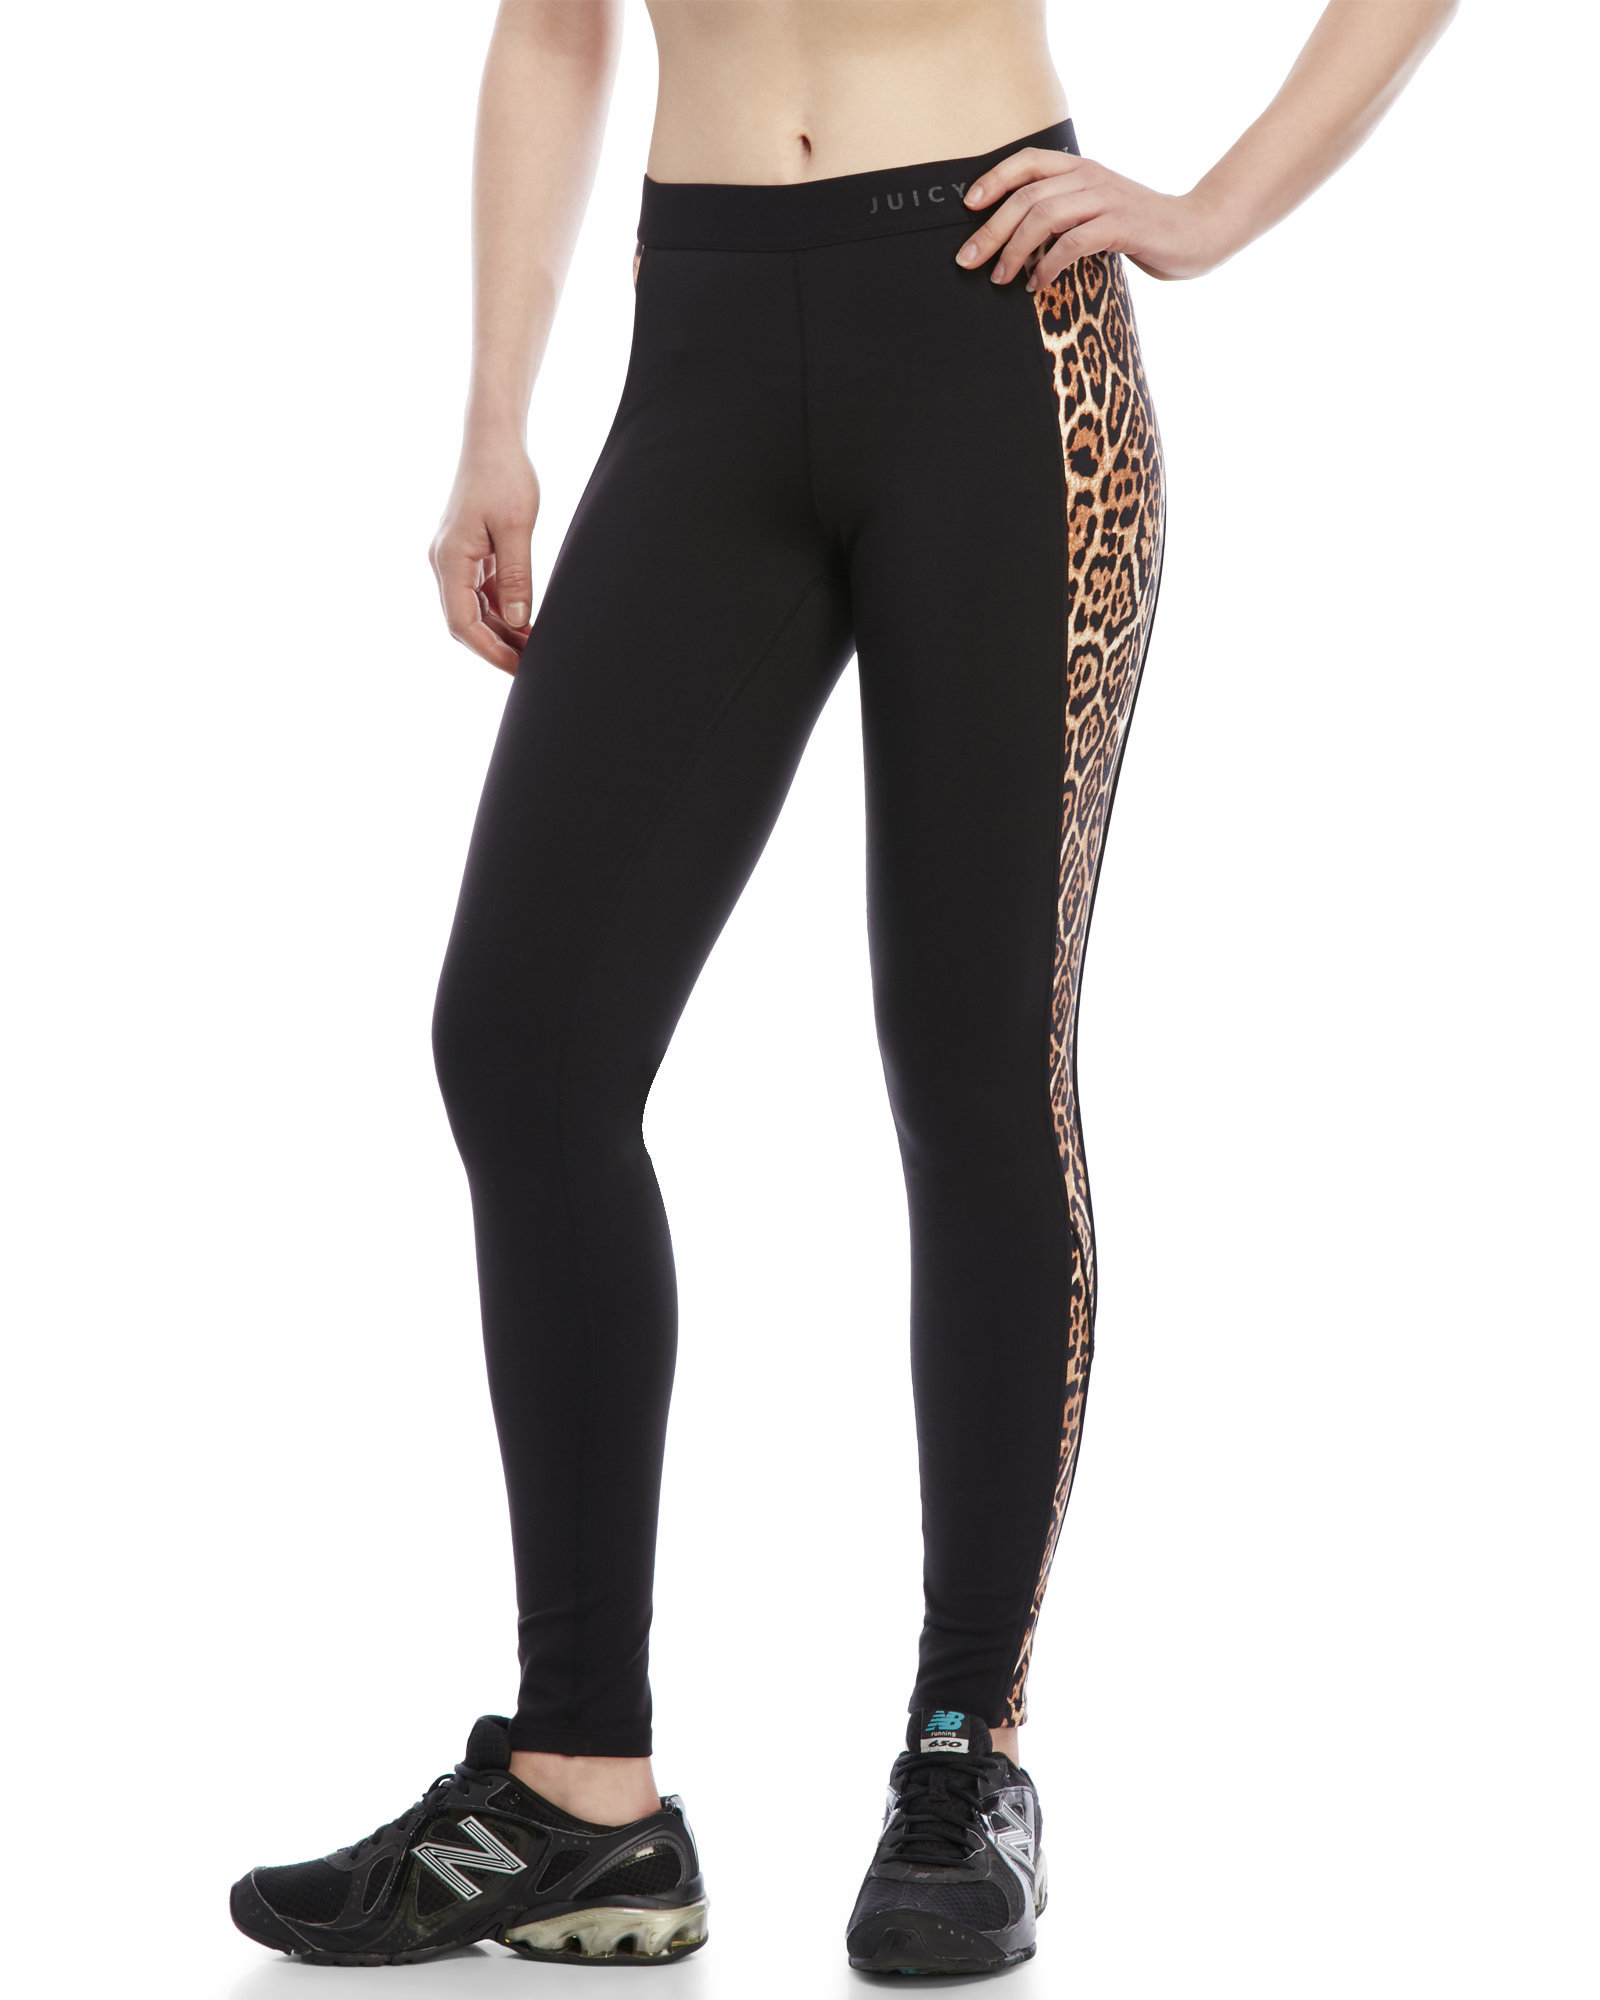 679d345367163 Juicy Couture Compression Sport Leggings in Black - Lyst